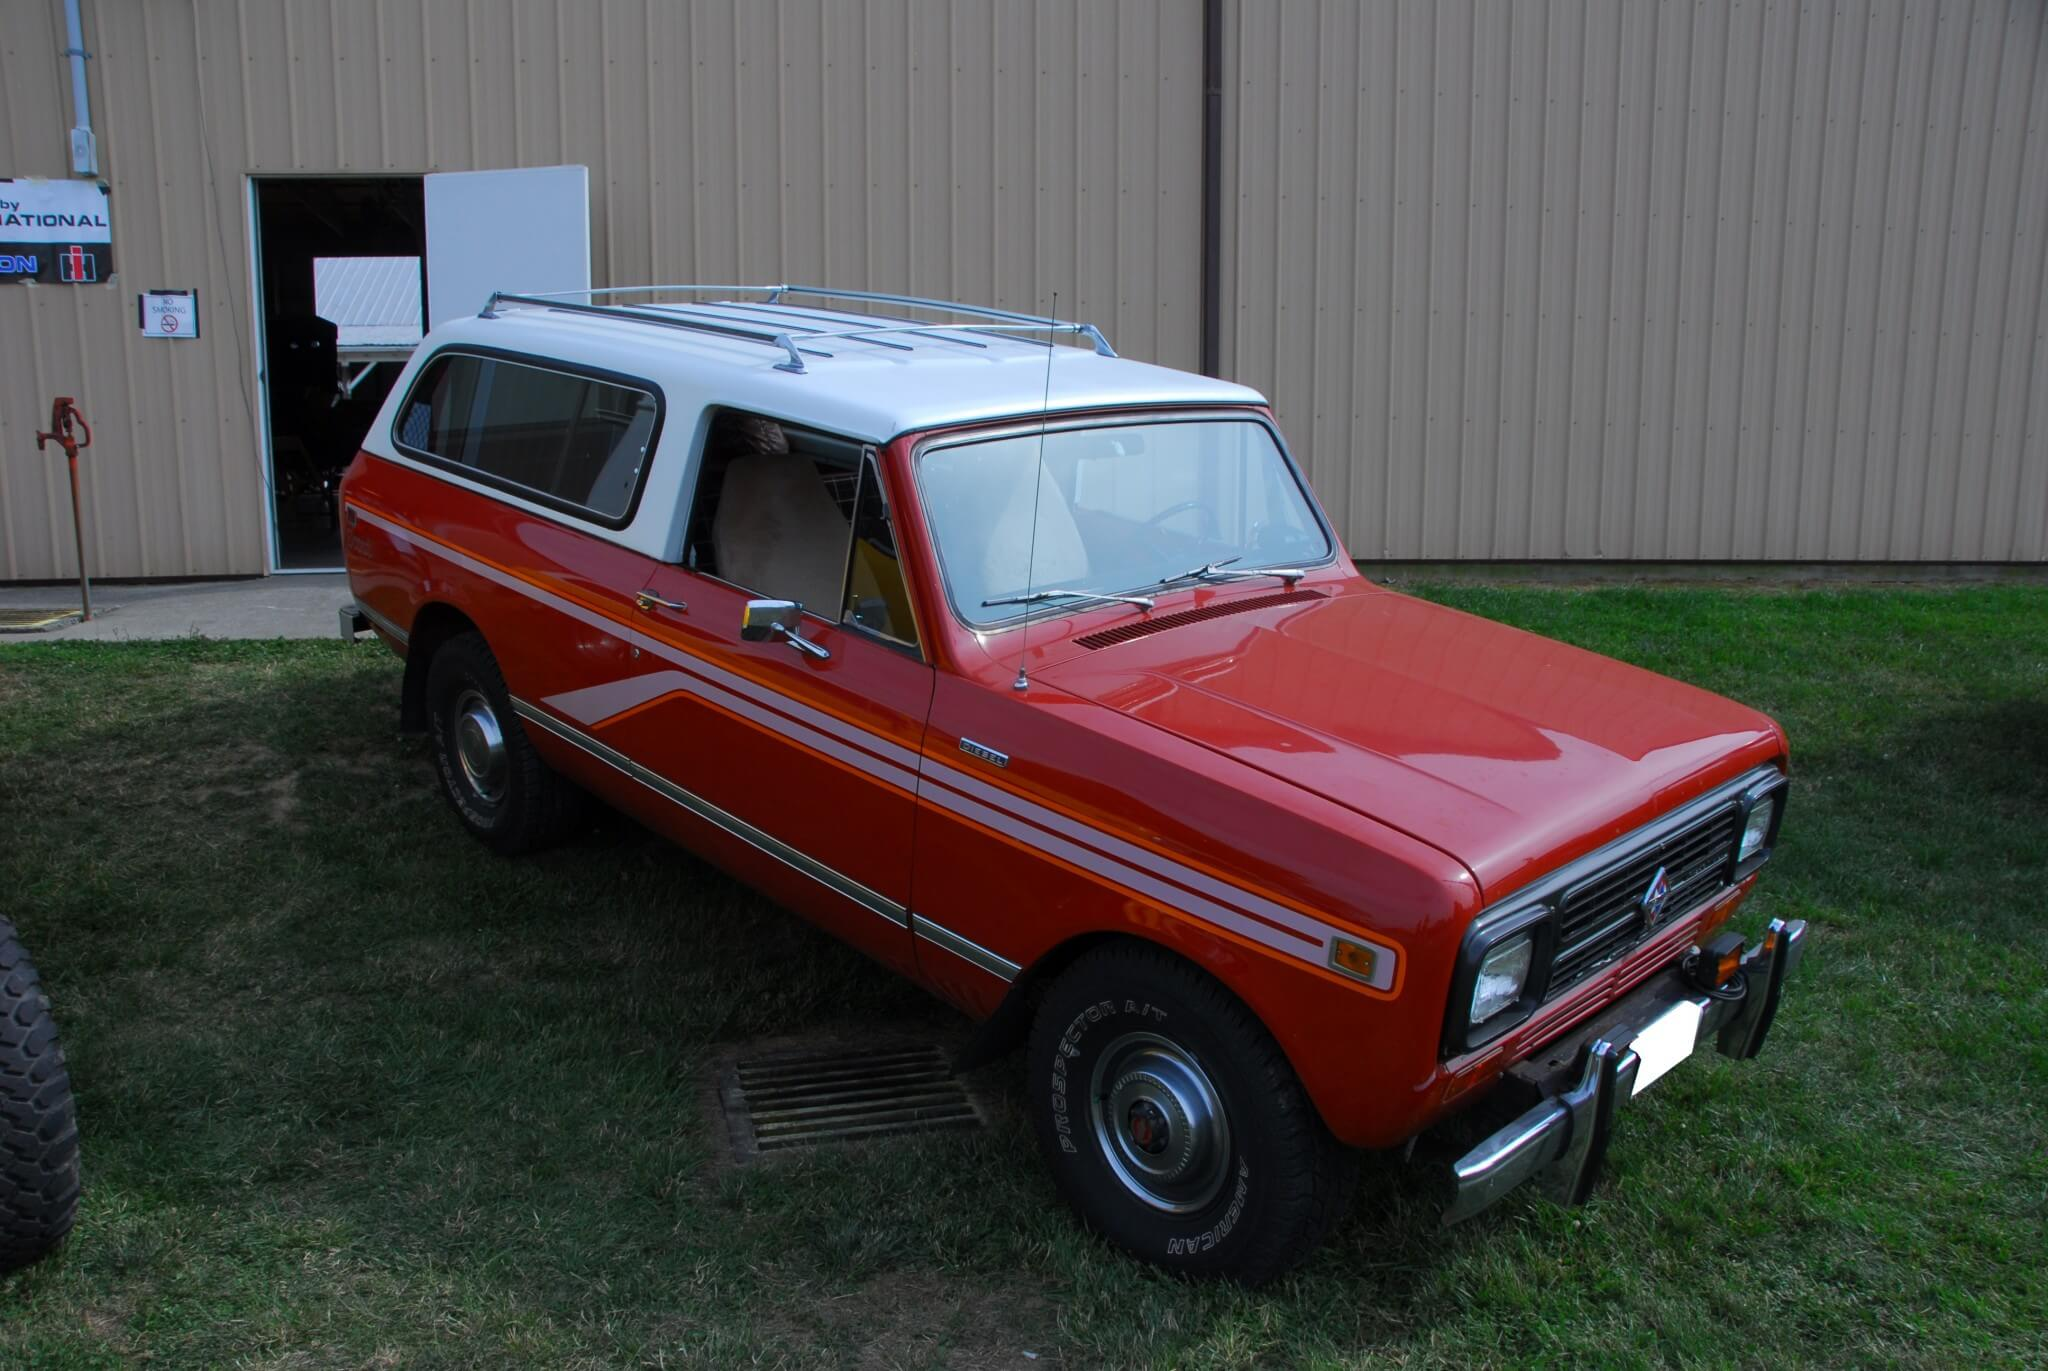 The Traveler SUV replaced the legendary Travelall. Though it only came as a two-door, it had plenty of room for six passengers. Towing capacity was the same as the other Scouts, about 10,000 lbs. Carl and Mary Kindberg's 1980 Traveler came from Nebraska in 2006, and the engine failed a few months later. The Kindbergs transplanted a rebuilt SD-33T with what have now become typical mods: Mercedes 300D turbine housing and impeller, modified exhaust, and a turned-up pump. On a recent 1,800-mile trip, the Traveler averaged 21.9 mpg.